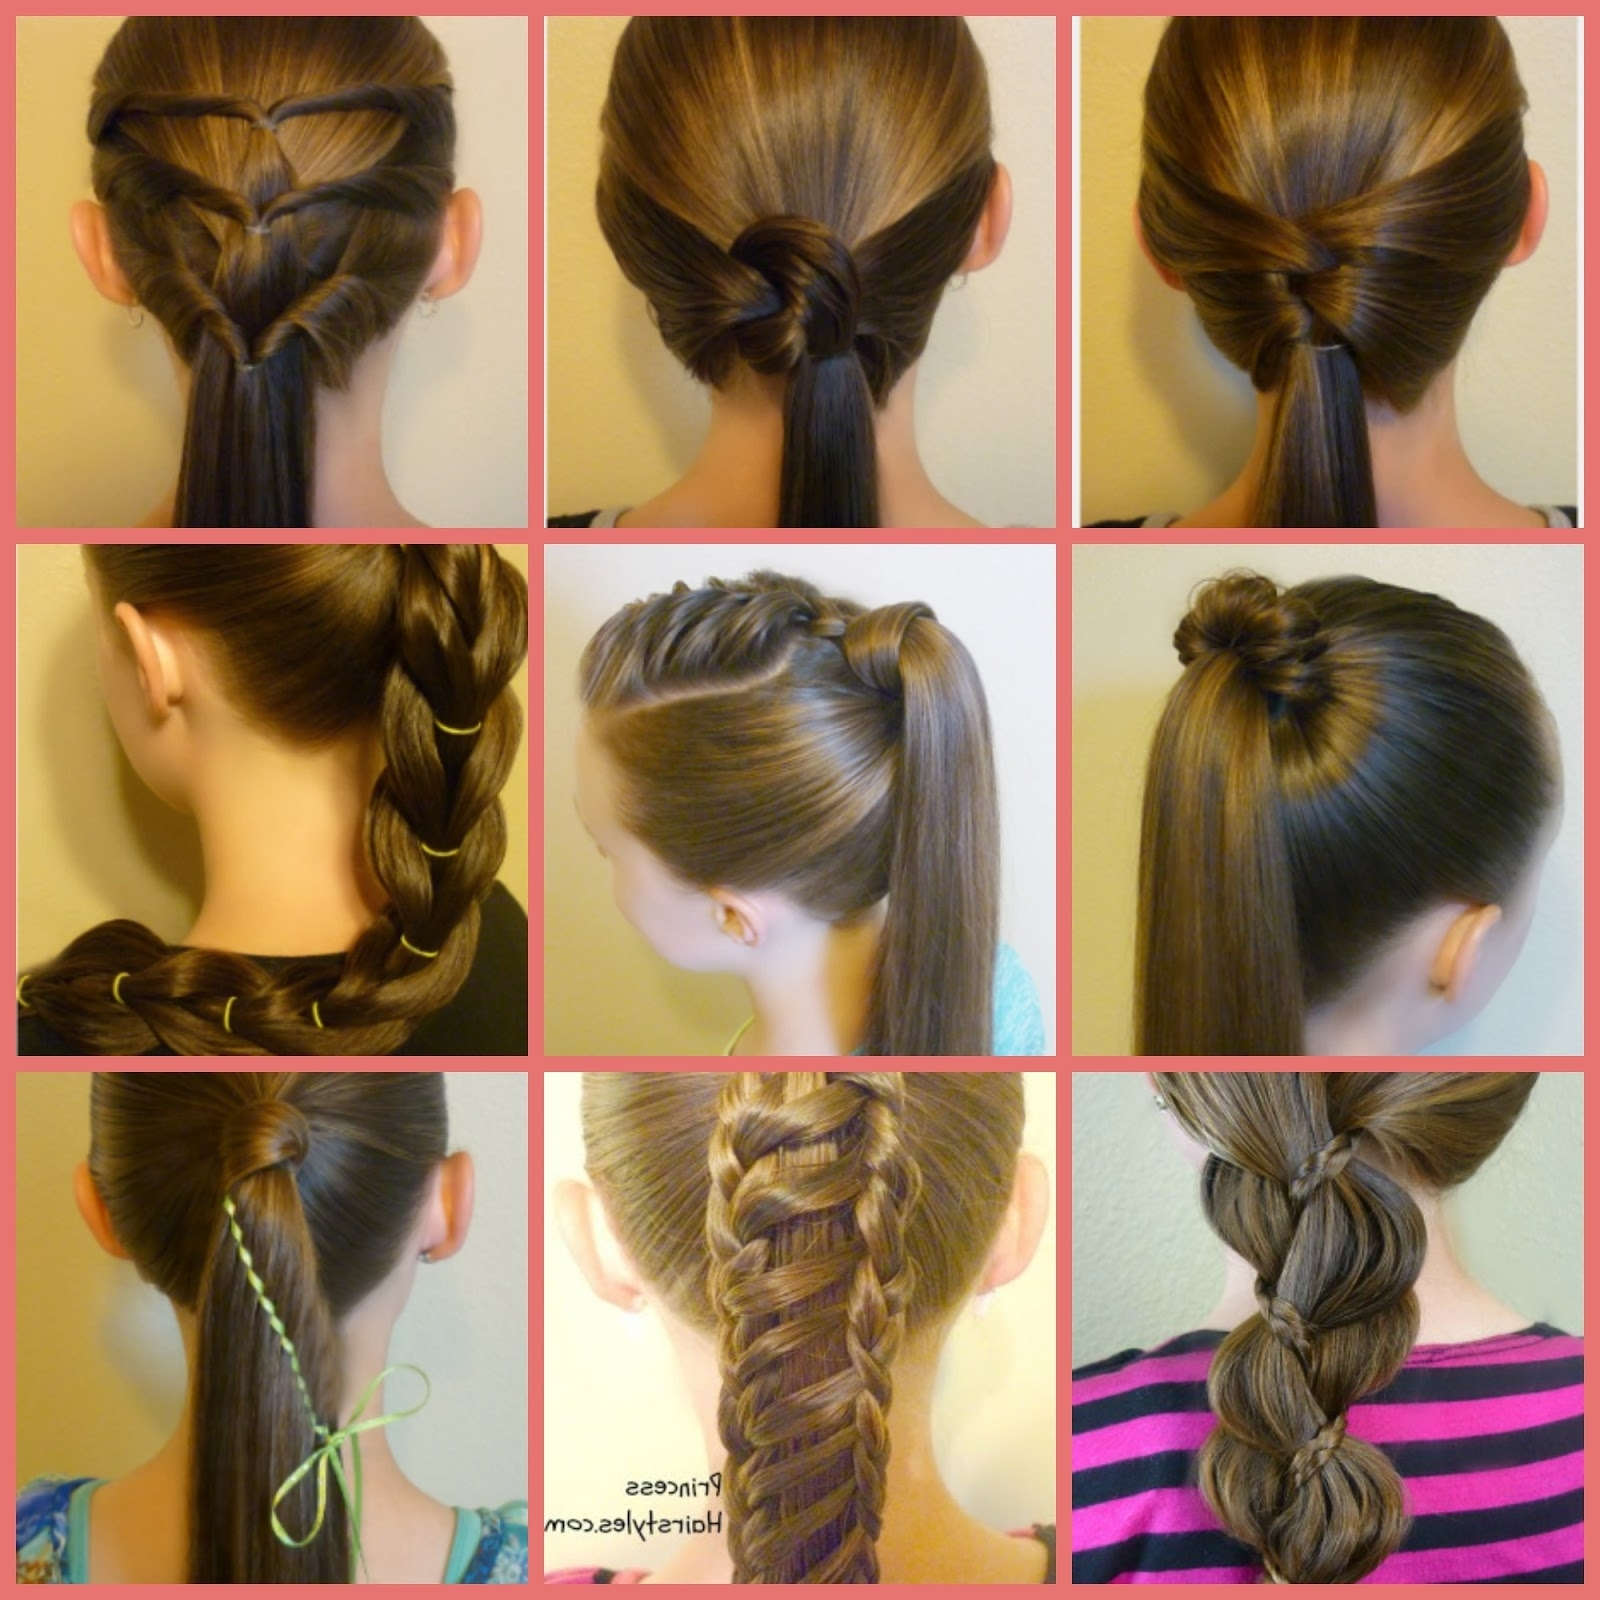 2017 Bow Braid Ponytail Hairstyles Regarding 10 Easy Ponytail Hairstyles – Hairstyles For Girls – Princess Hairstyles (View 1 of 20)